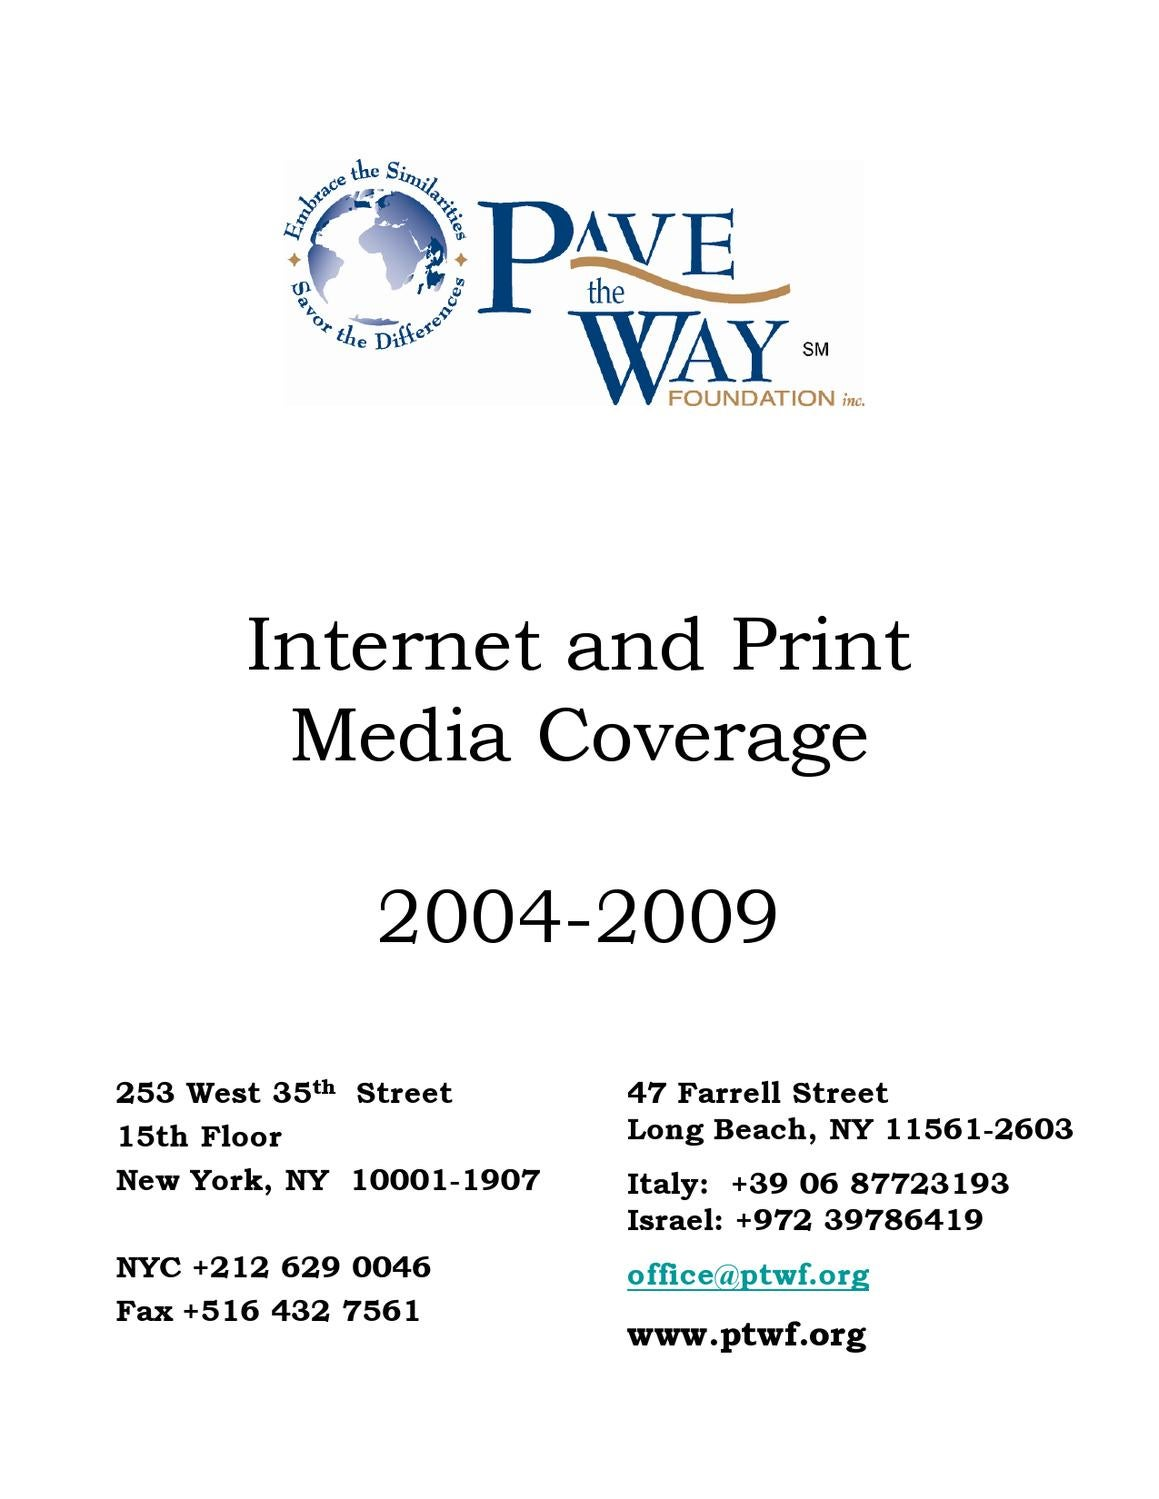 PTWF Press Coverage 2004 to 2009 Part 2 by Dennis Tritaris - issuu